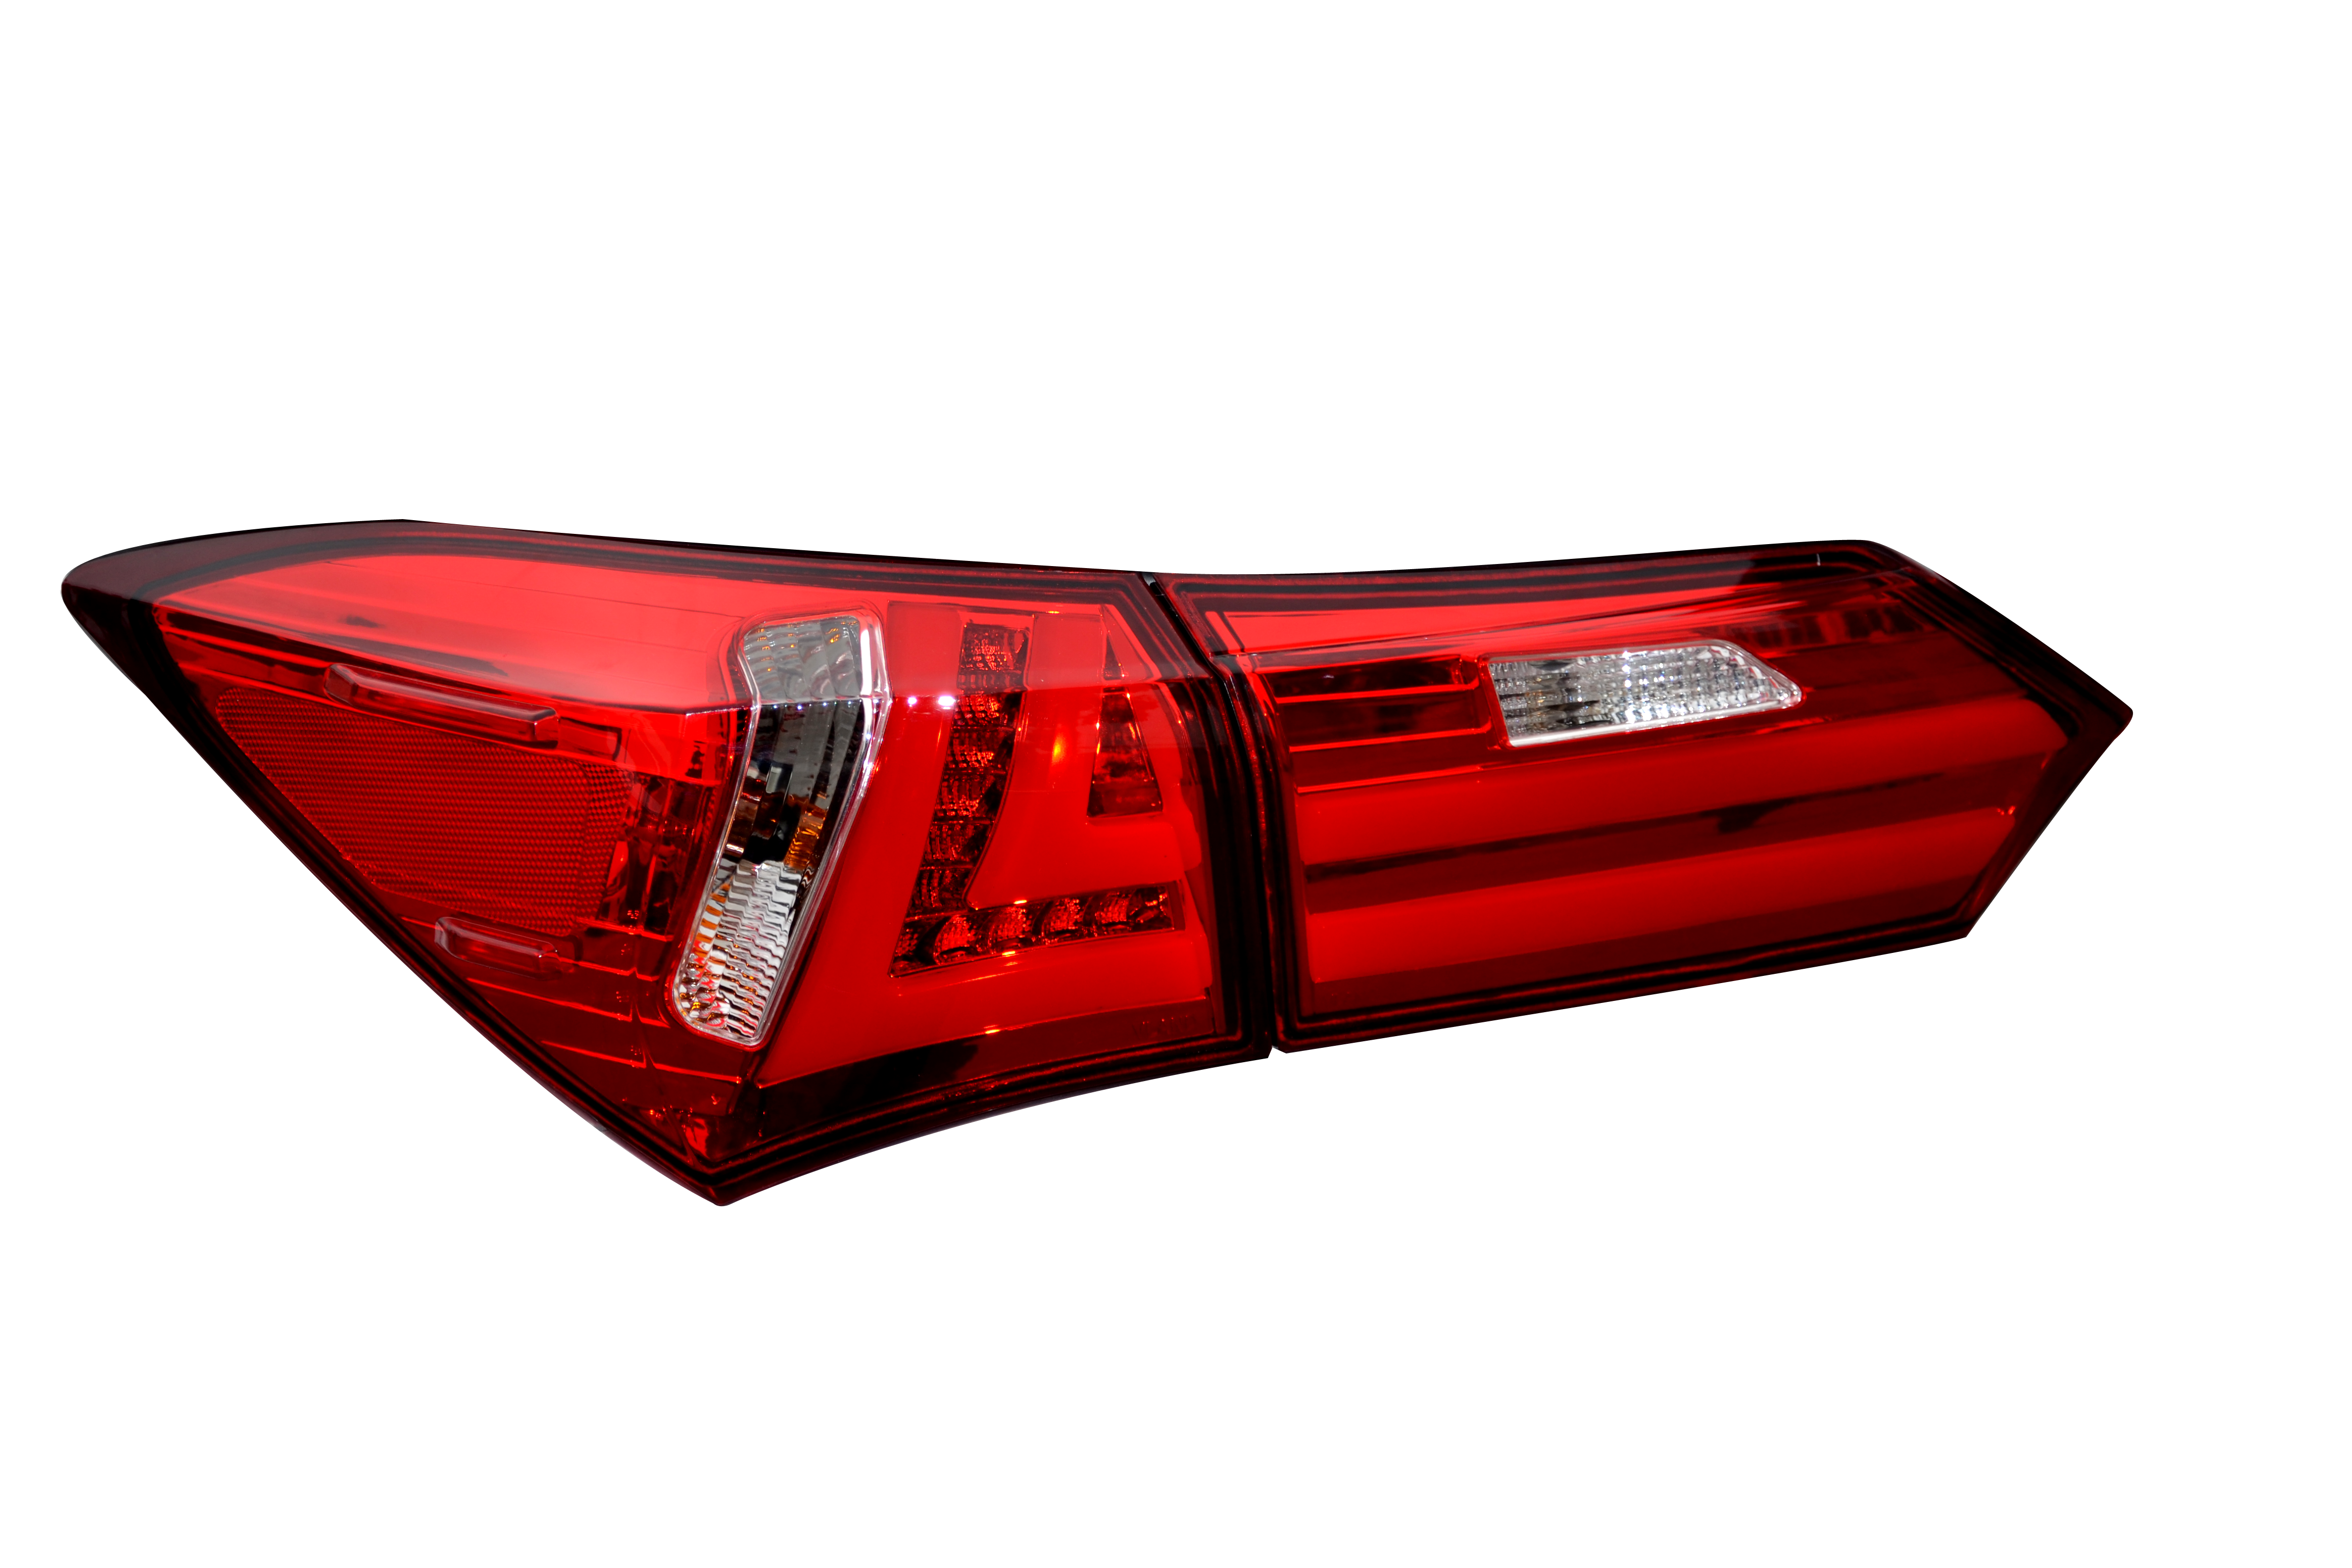 Vland Car For Corolla Led Tail Light 2014 New Corolla Altis Tail Lights Rear Trunk Lamp Vland Toyotacorollataillig New Corolla Led Tail Lights Corolla Altis